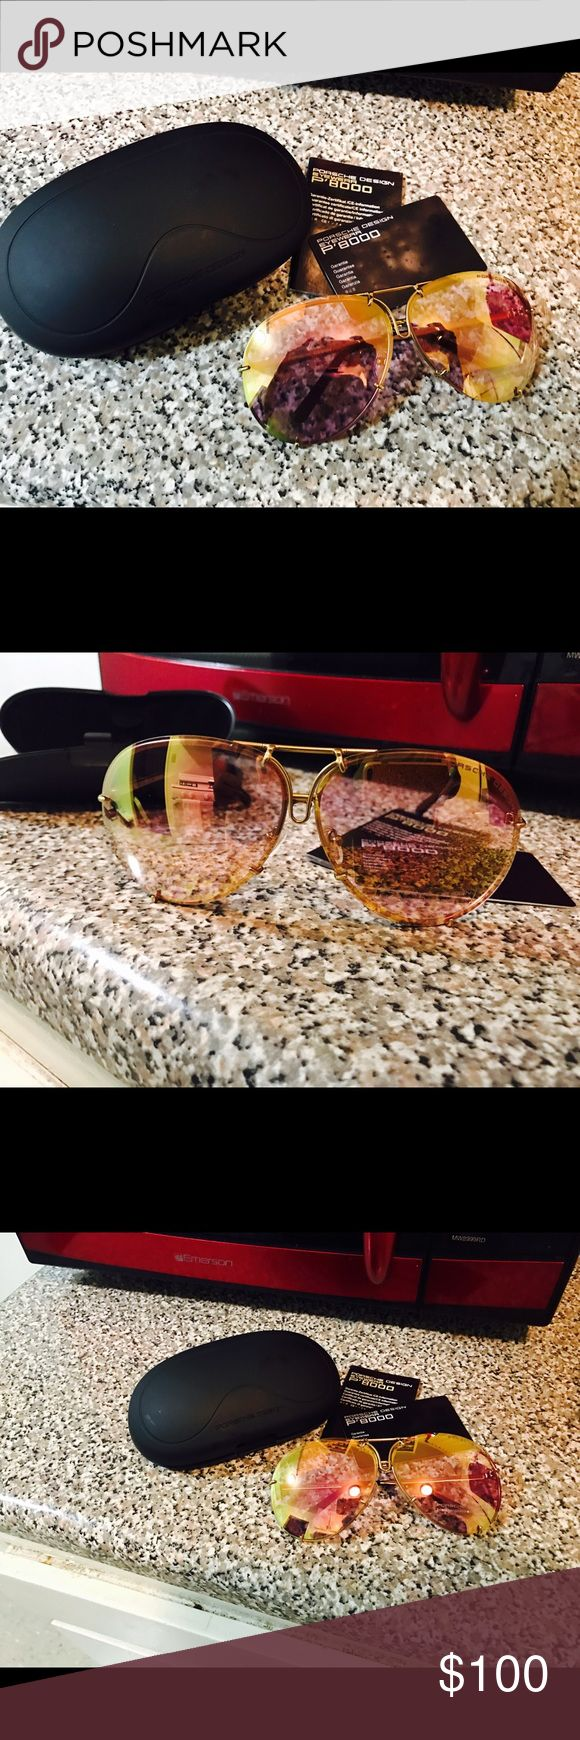 Name brand sunglasses Authentic Porshe design sunglasses (P'8000) frame color : gold / lens color : mirrored pink comes with case and authenticity cards porshe Accessories Sunglasses